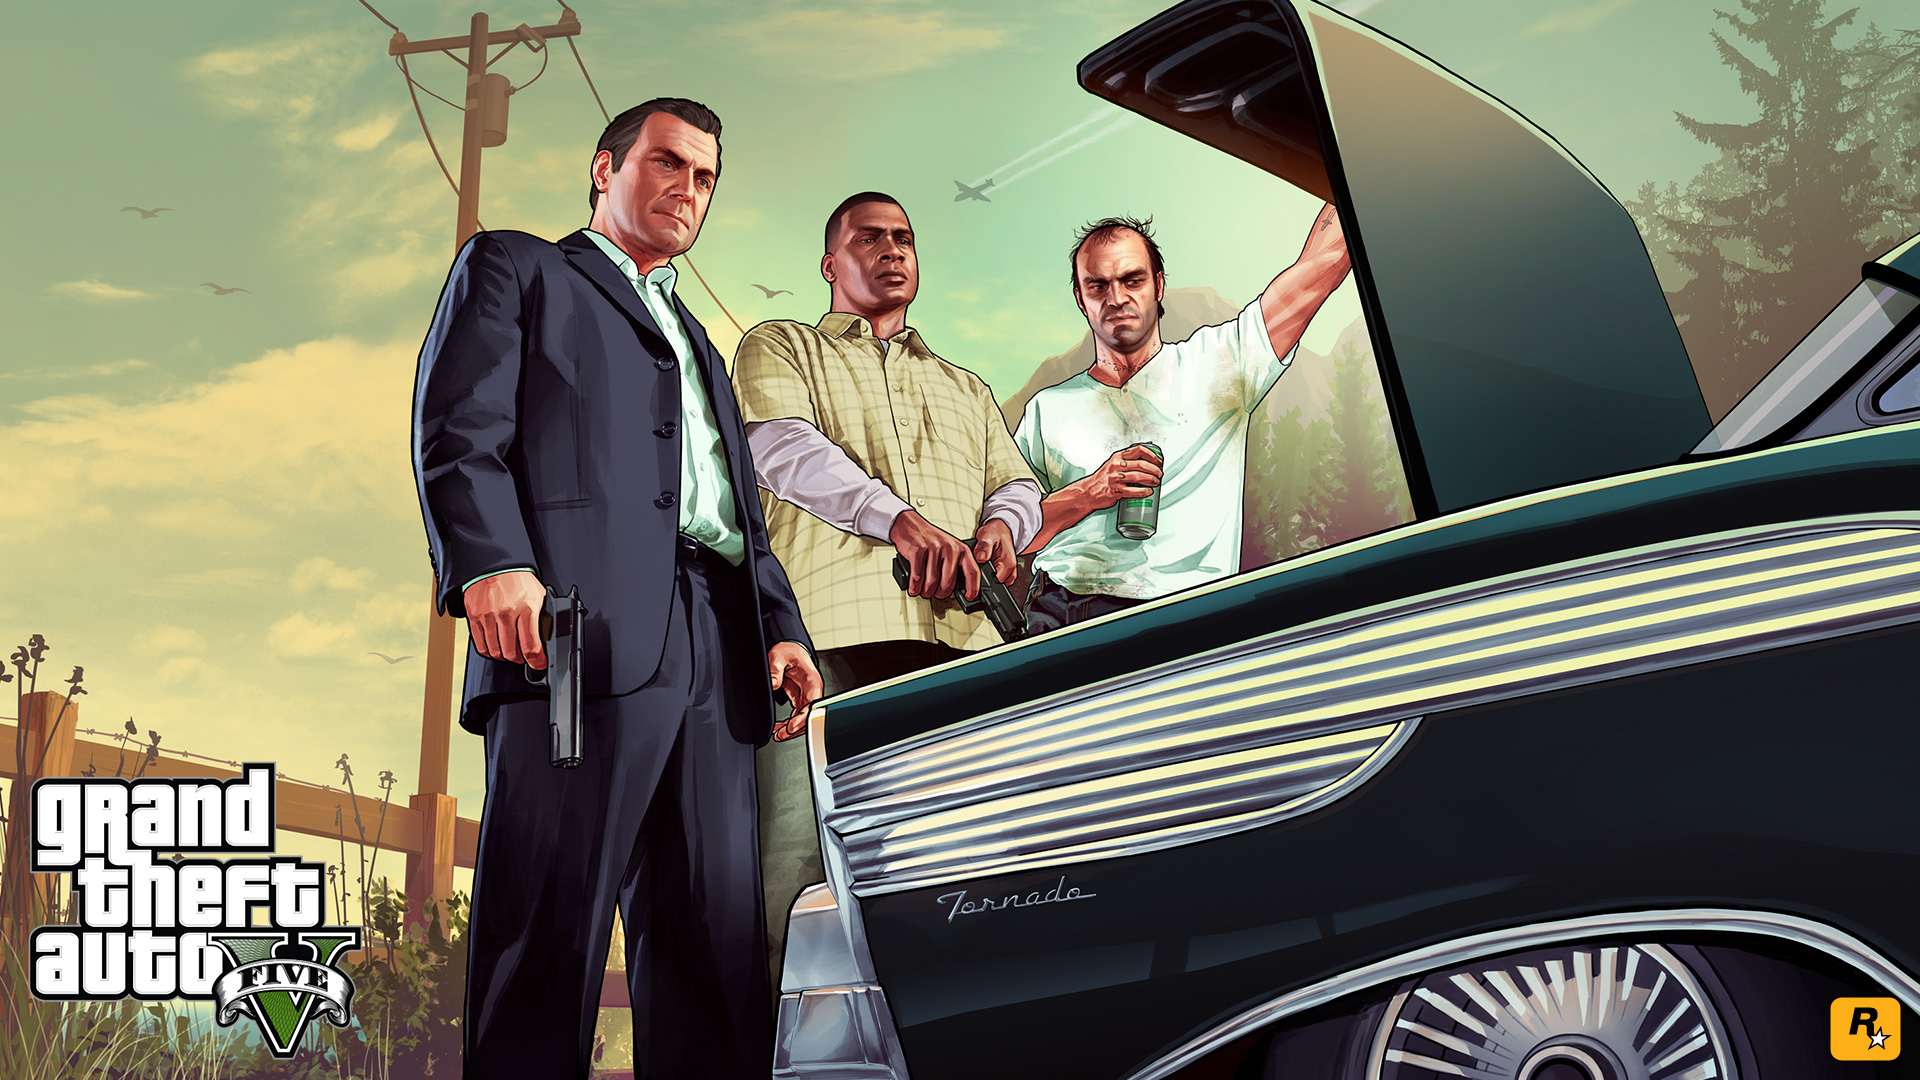 Grand Theft Auto V - The Trunk